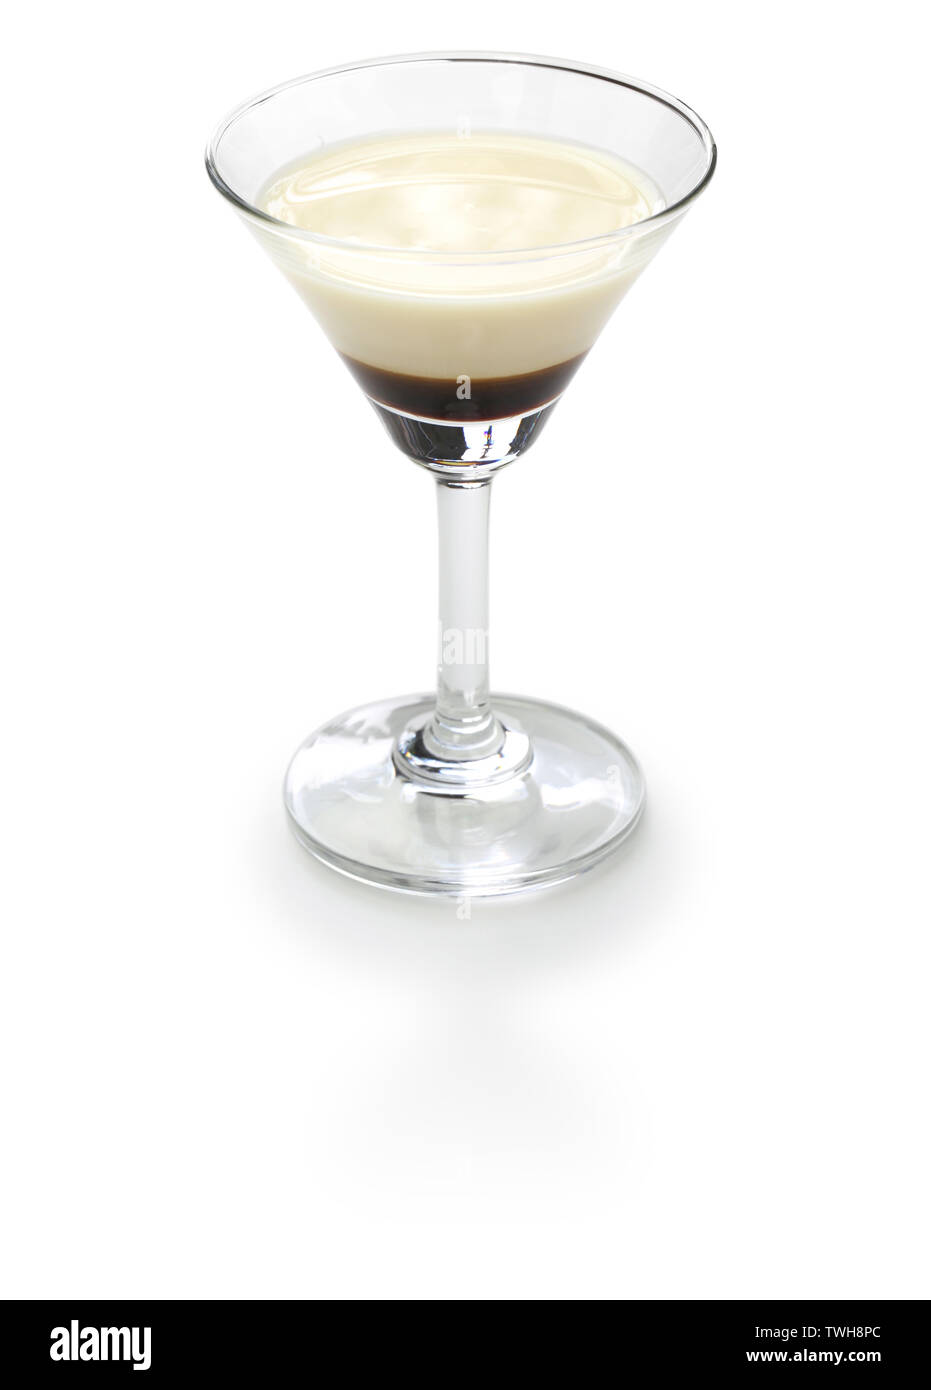 black and white, two color layered cocktail, homemade coffee liqueur and evaporated milk, alfonso13 - Stock Image